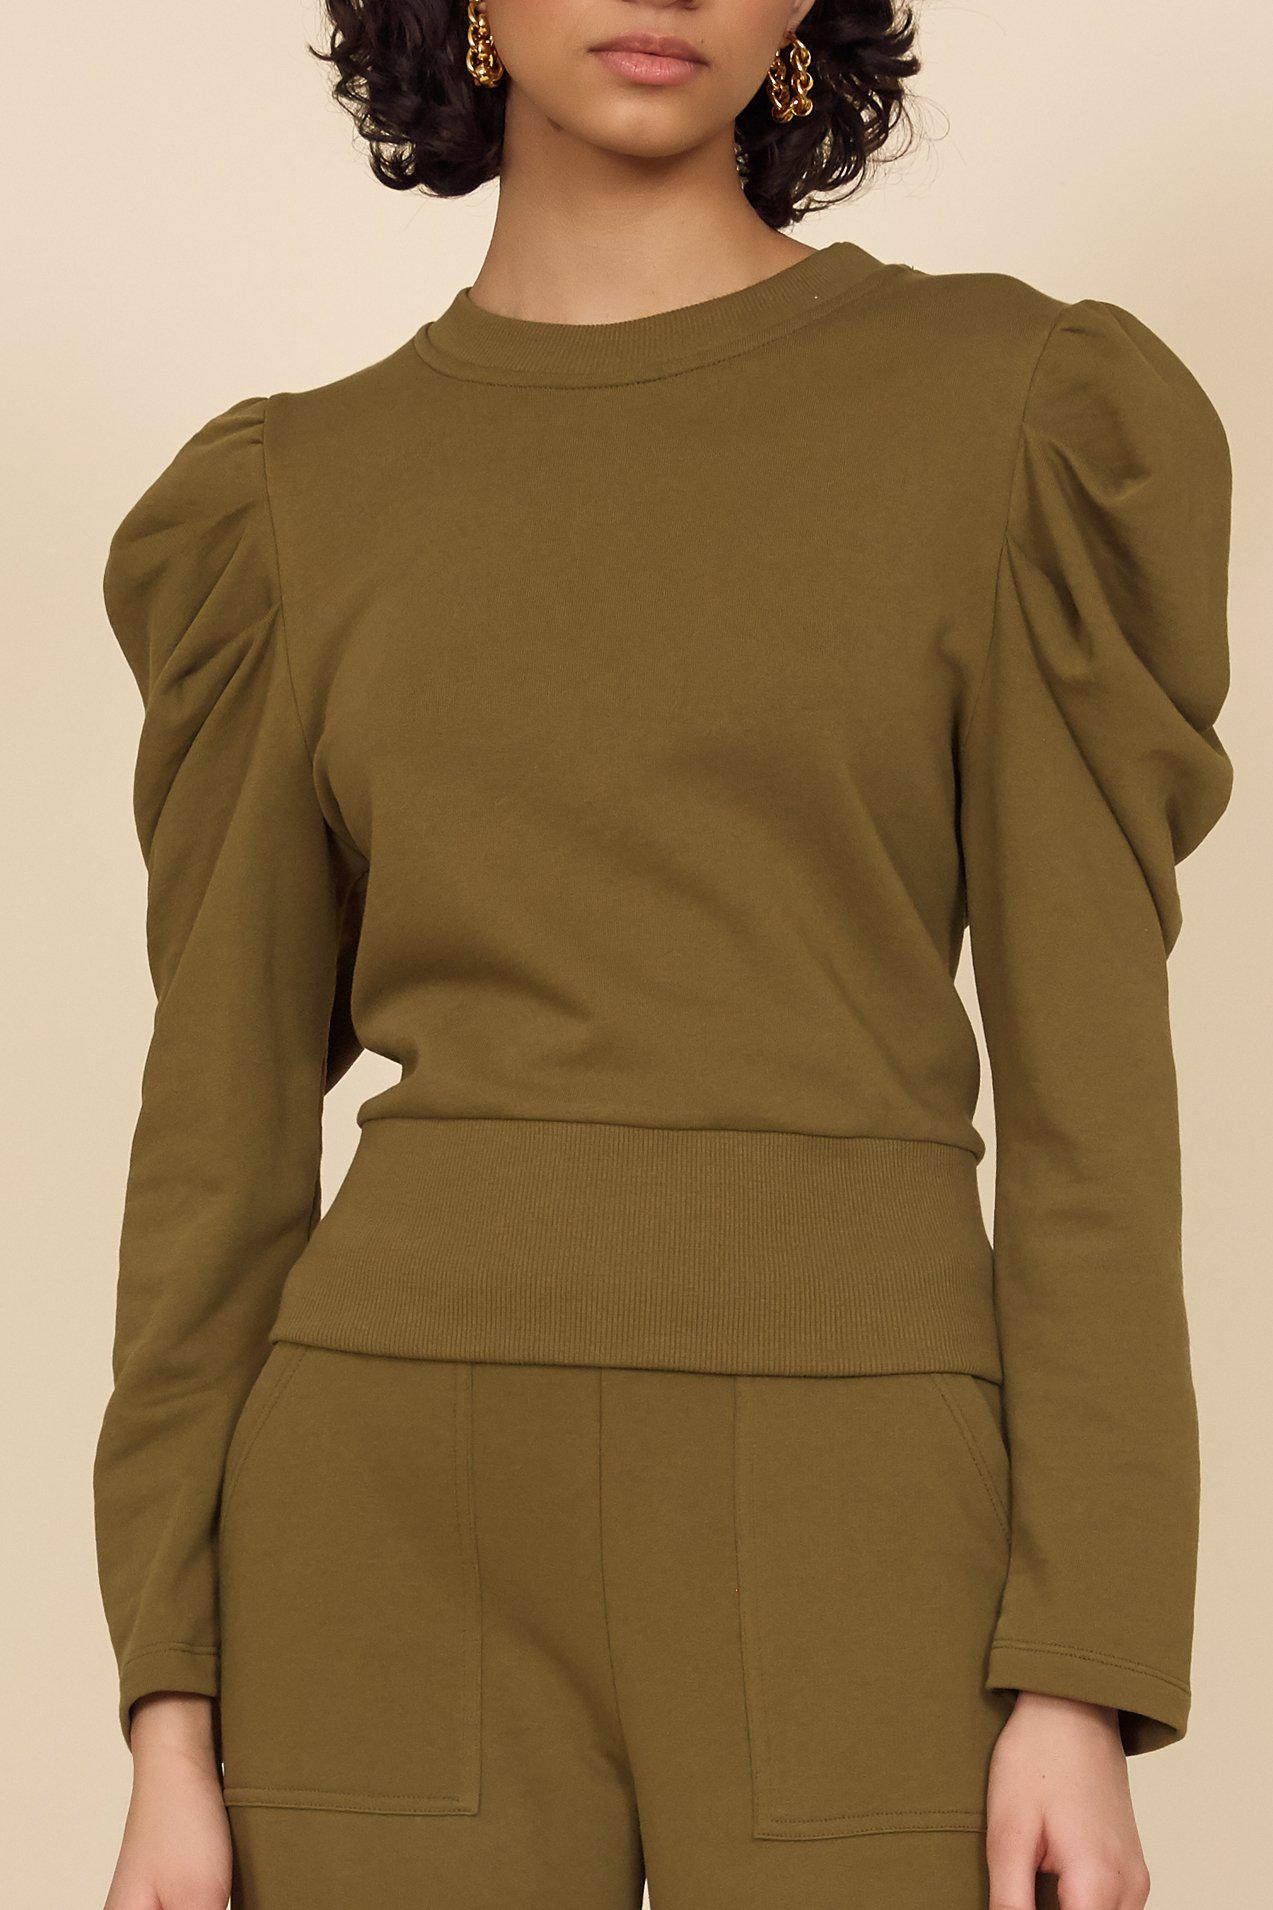 The Just Enough Puff Sweatshirt in Olive